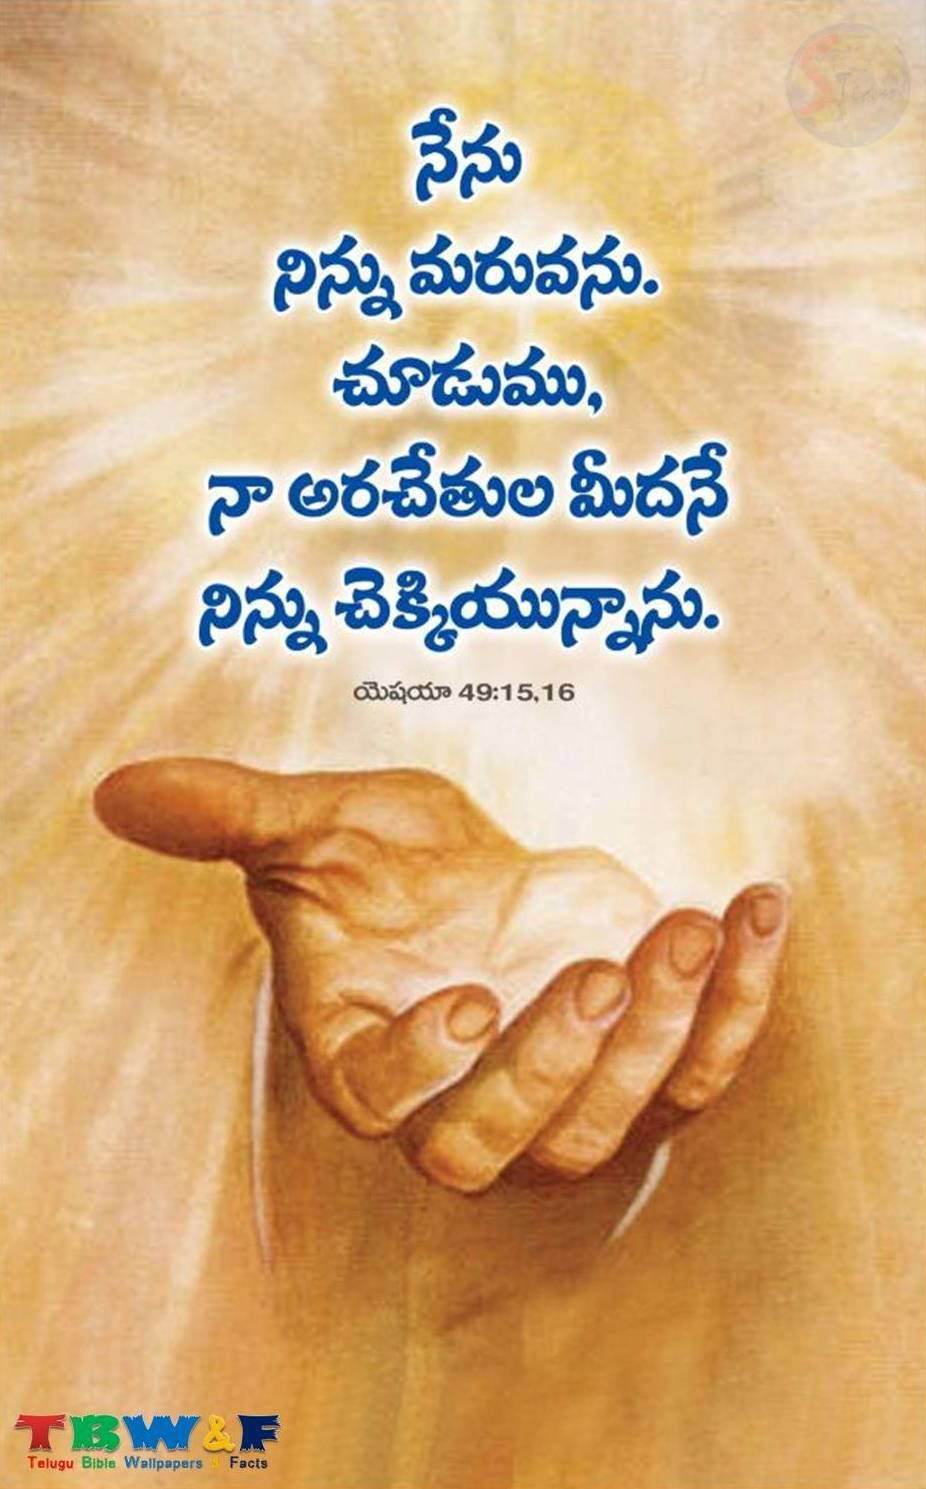 Bible Verses Wallpapers Board Telugu Jesus Christ Isaiah 4915 16